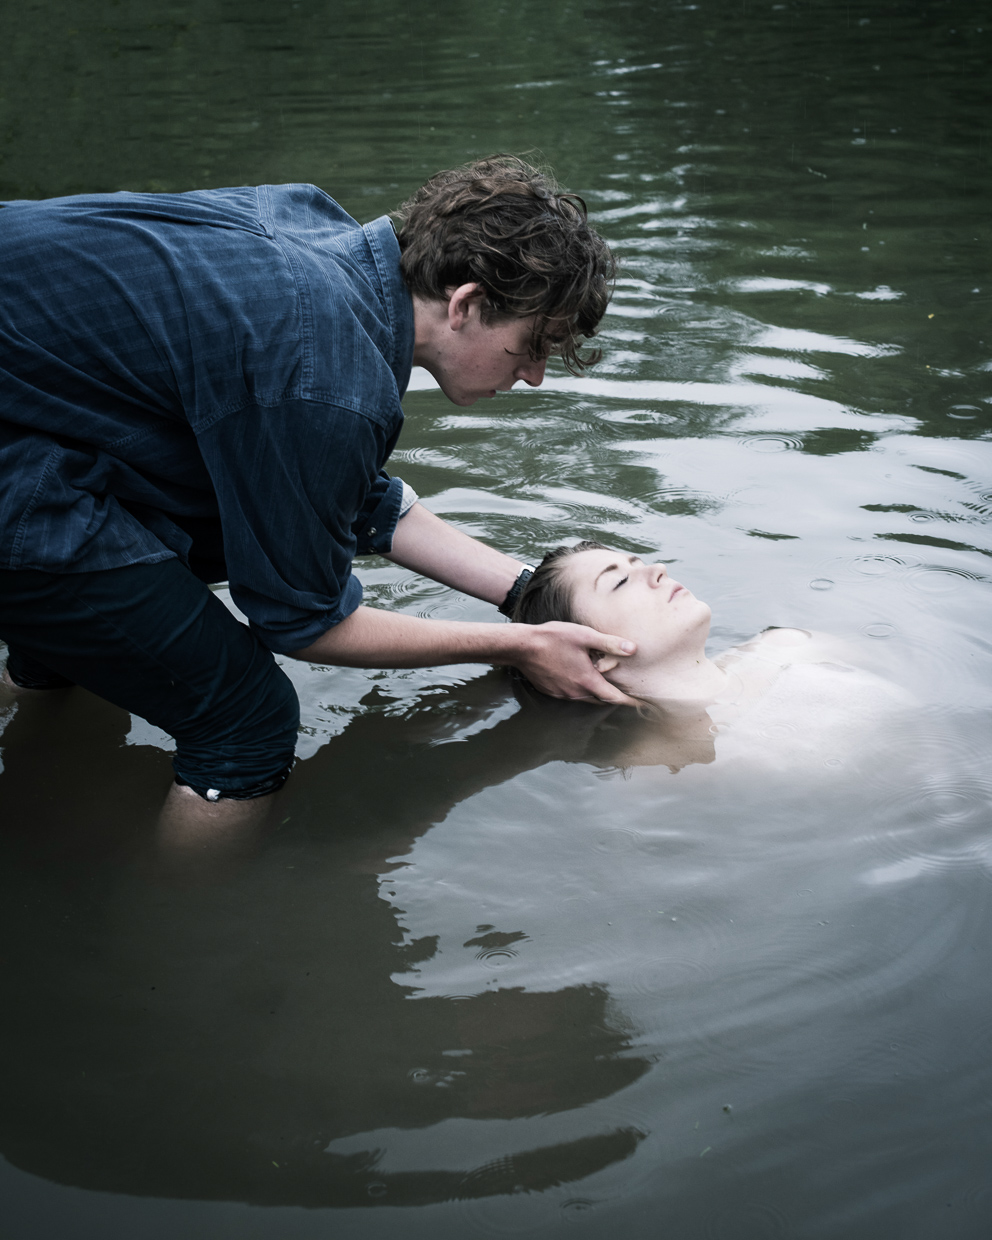 Joe and Laura in the water